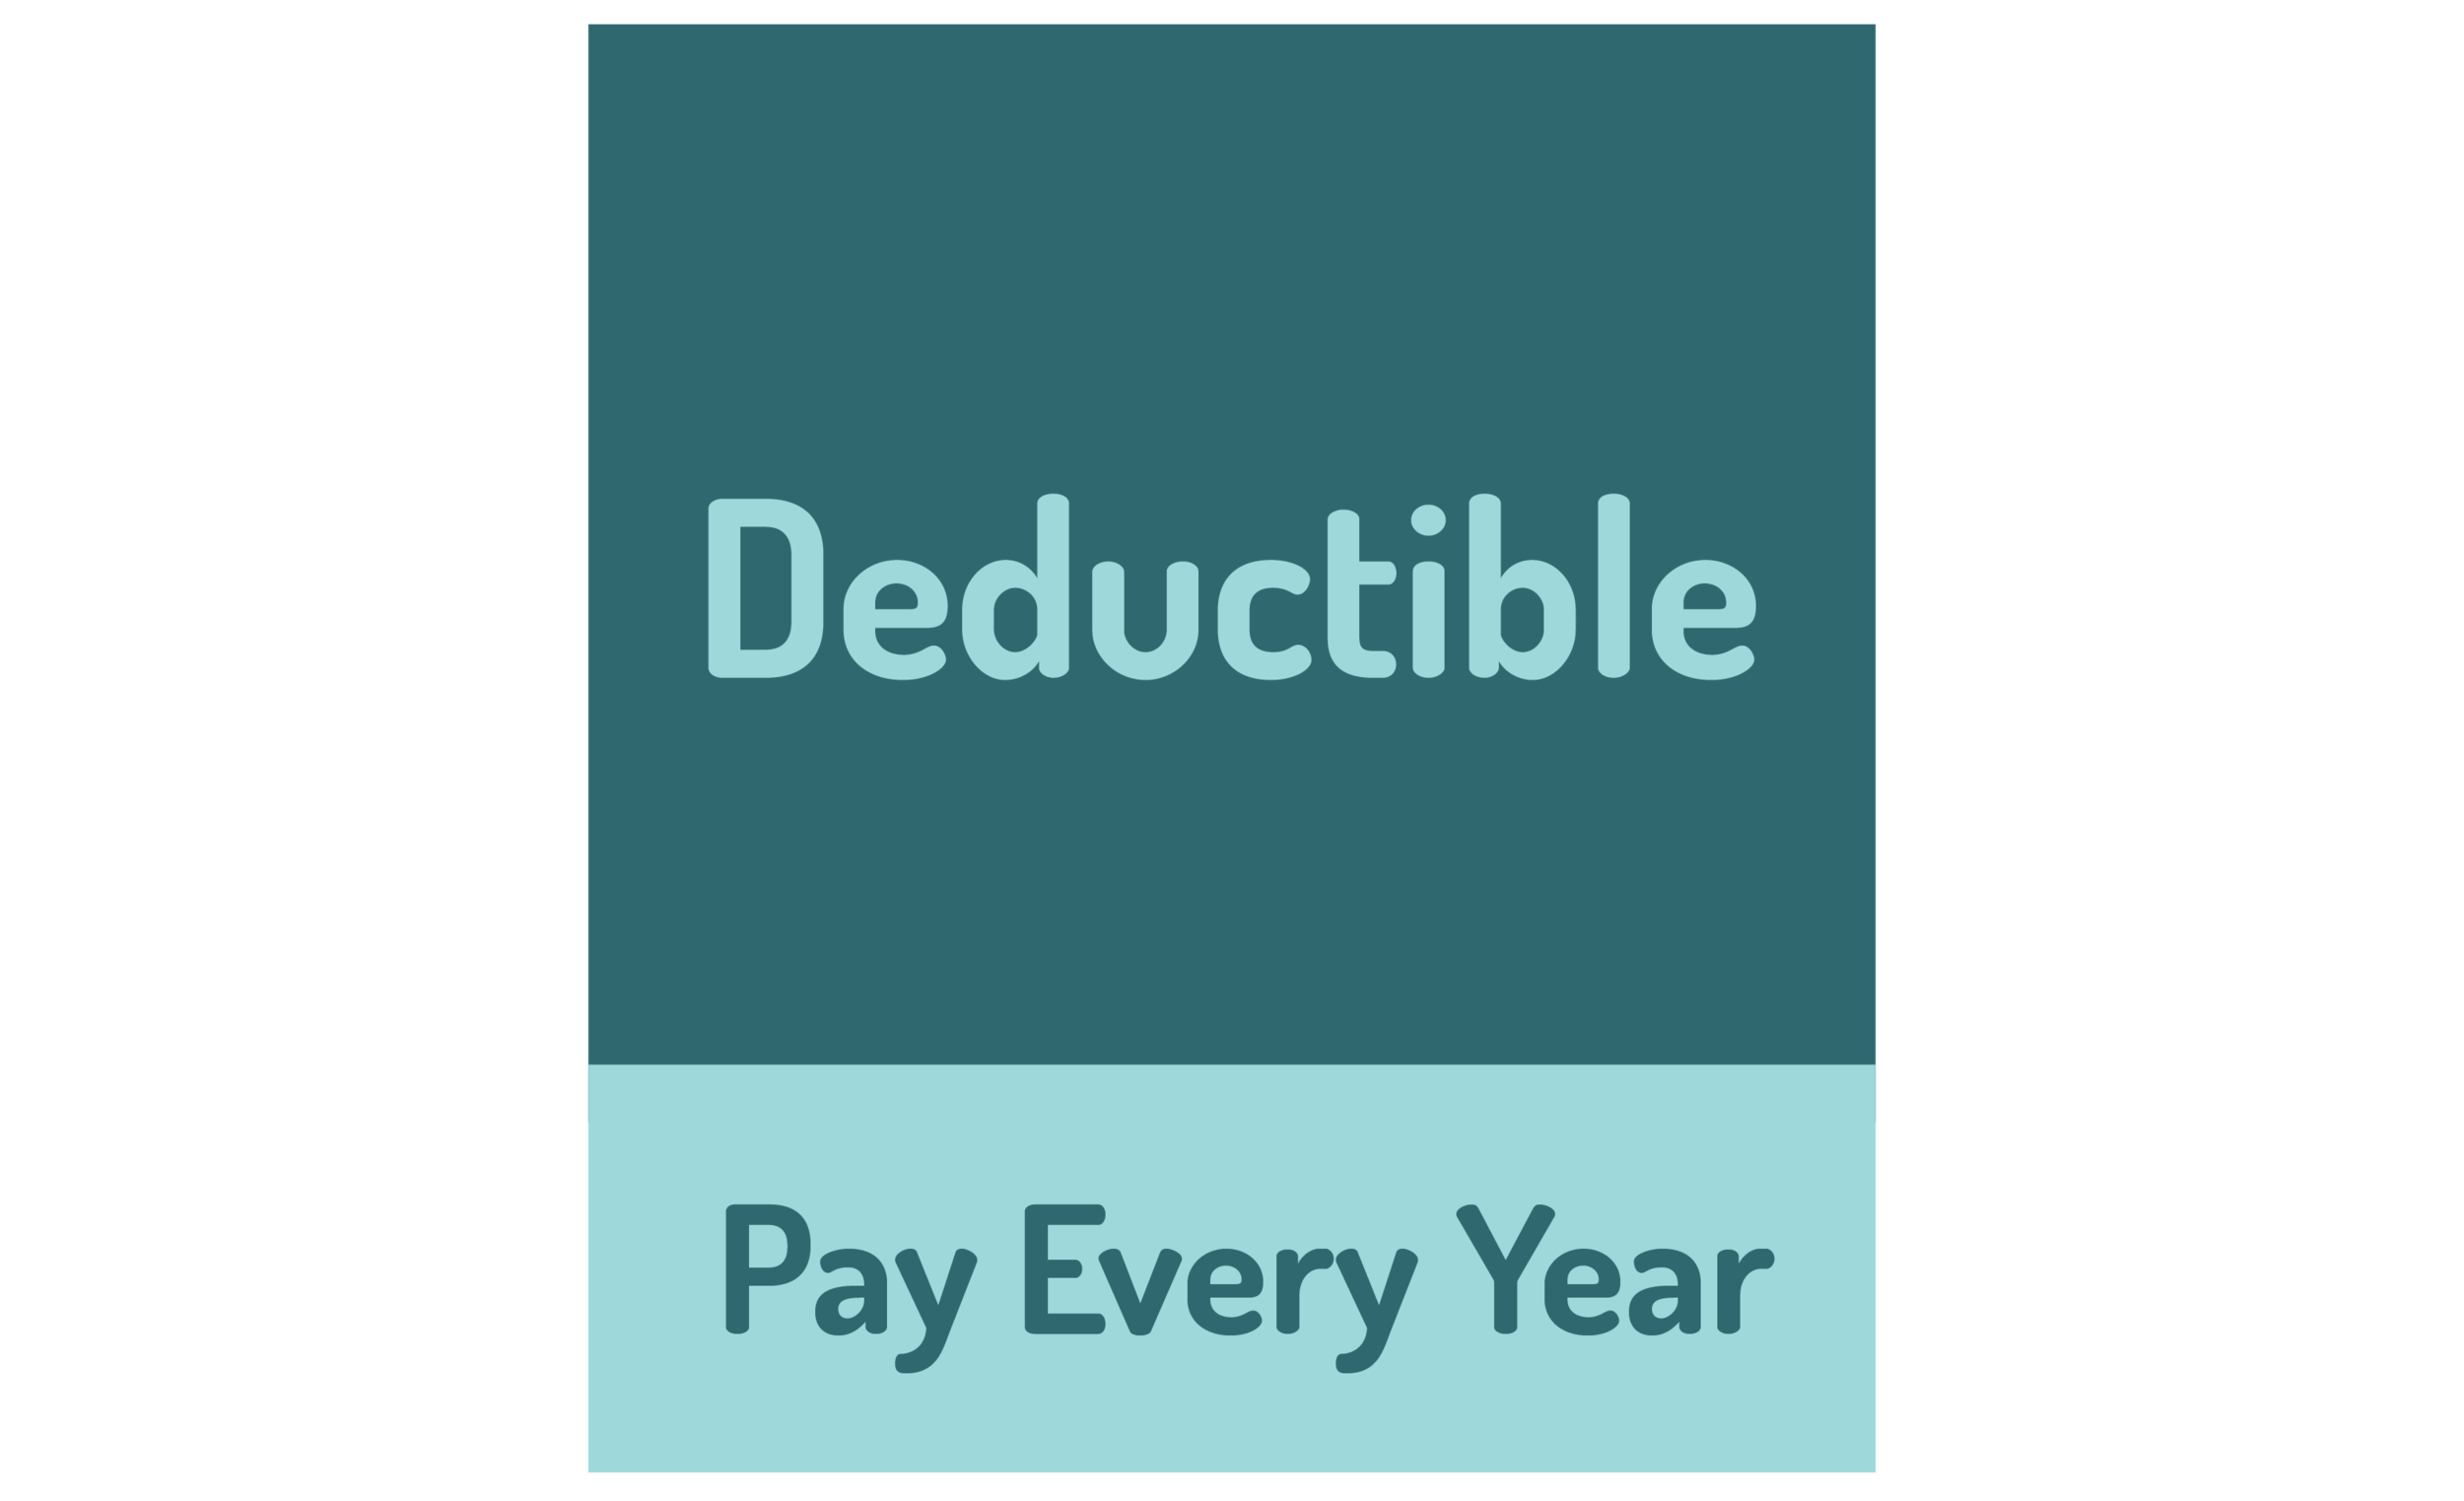 Graphic   DEDUCTIBLE:   Each year,  before your health plan pays for any health services you get, you have to pay for those services until you reach a certain dollar amount.  This amount is called your deductible.